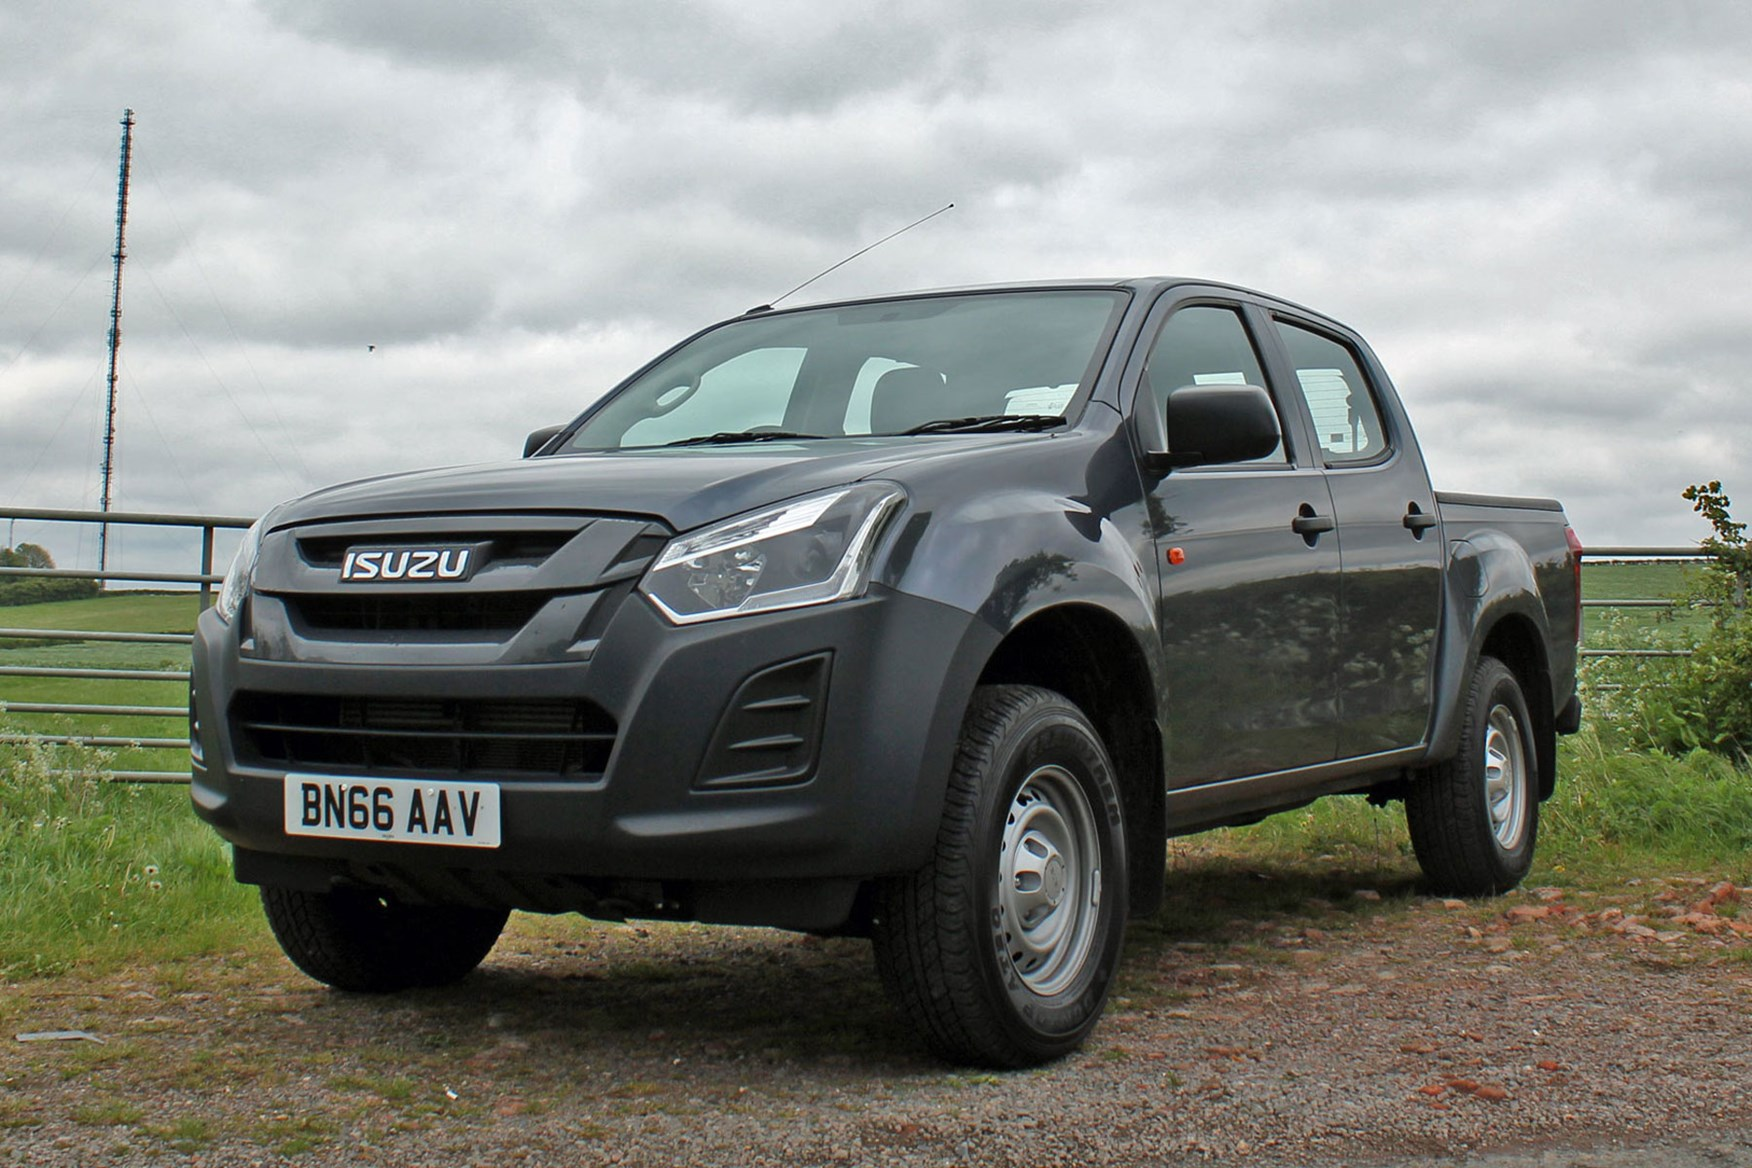 Isuzu D-Max Utility 1.9 review - front view, grey